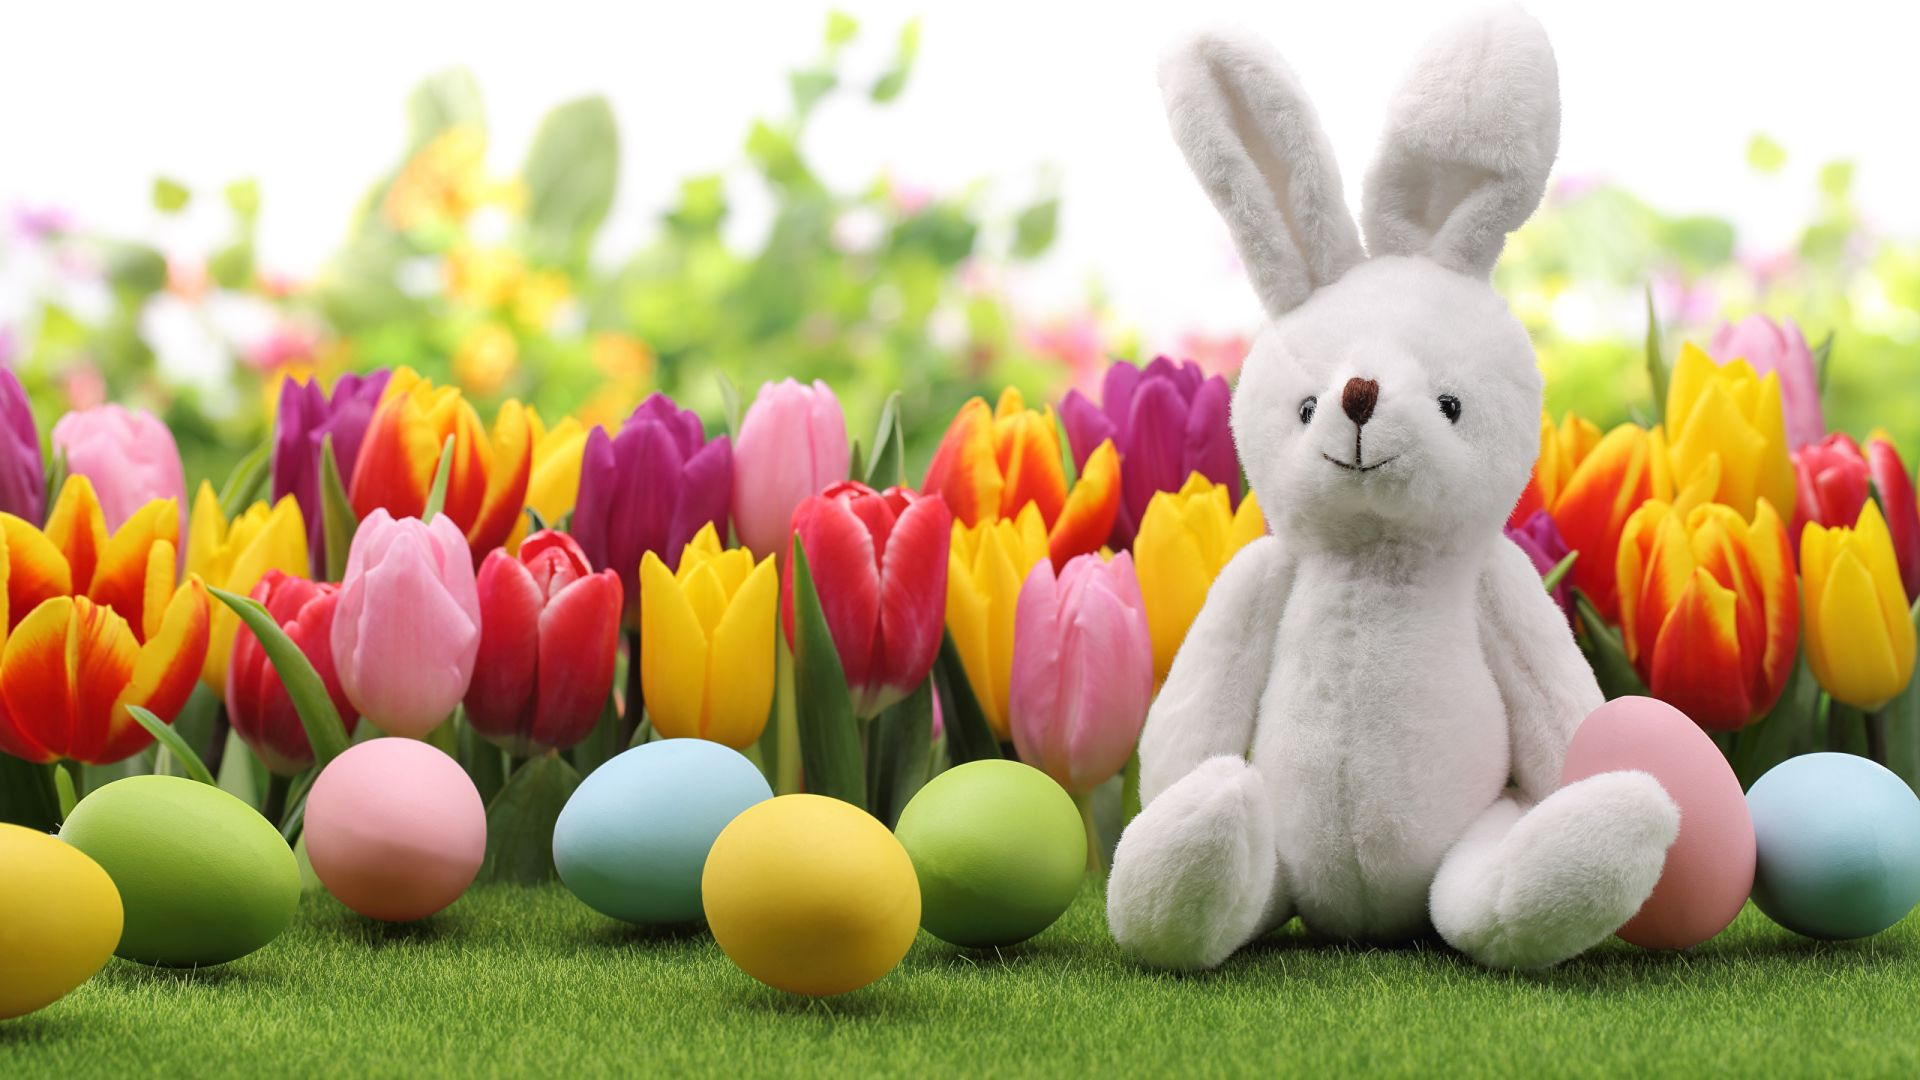 Easter Backgrounds bunny with flowers